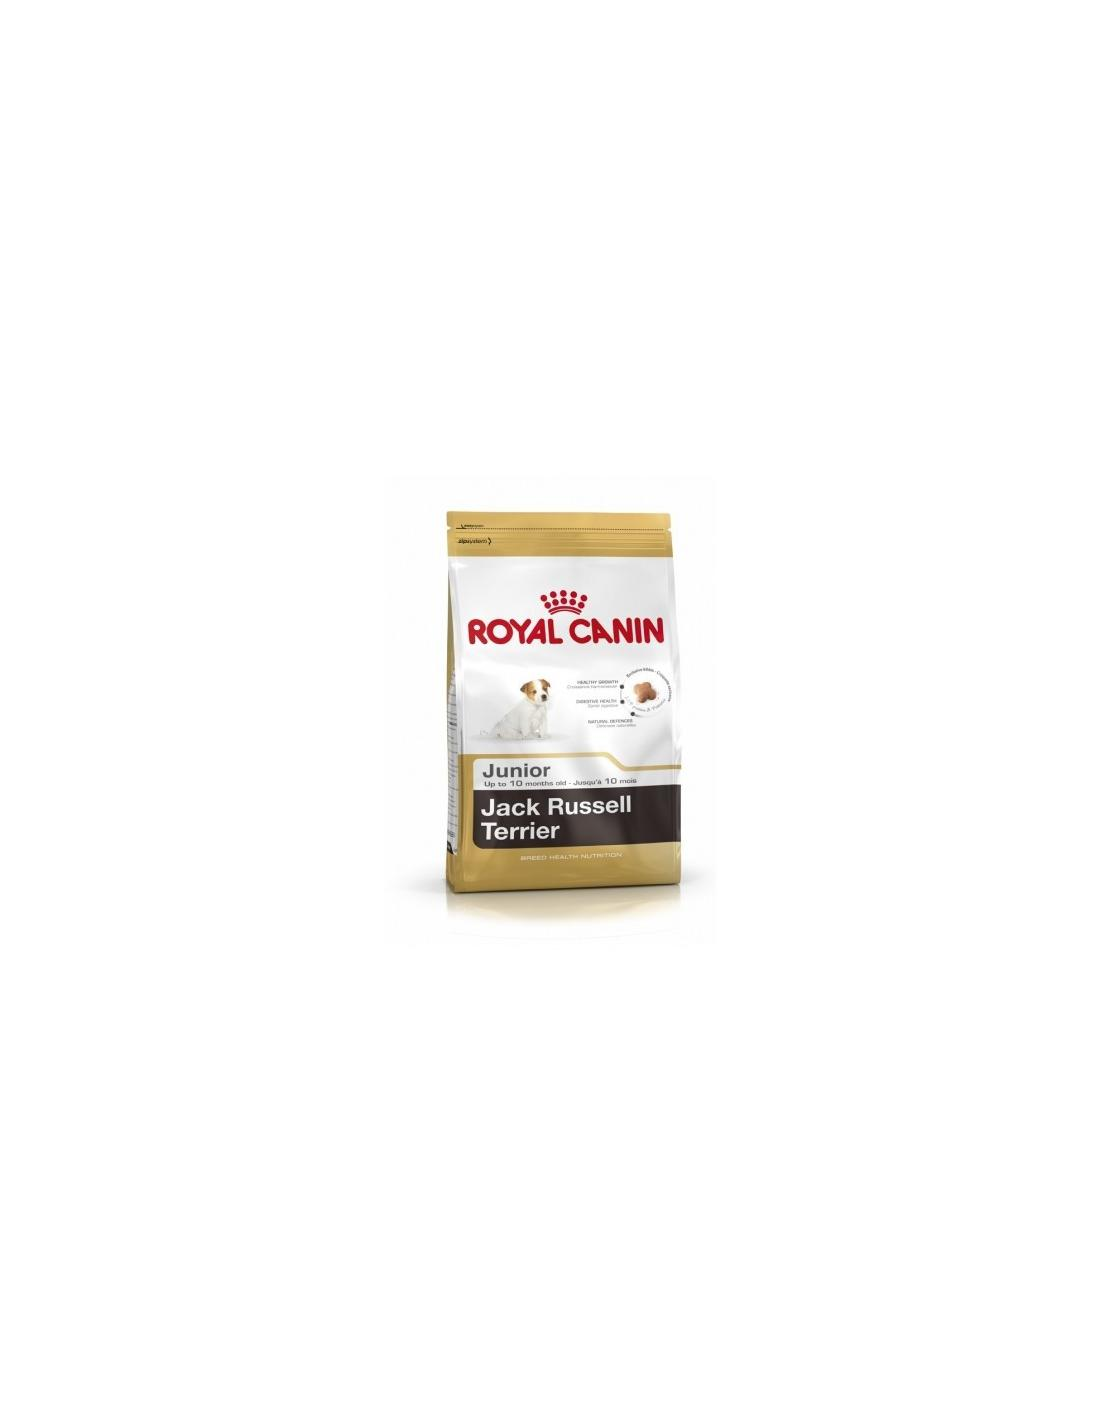 JACK RUSSELL JUNIOR 3KG ROYAL CANIN - 1